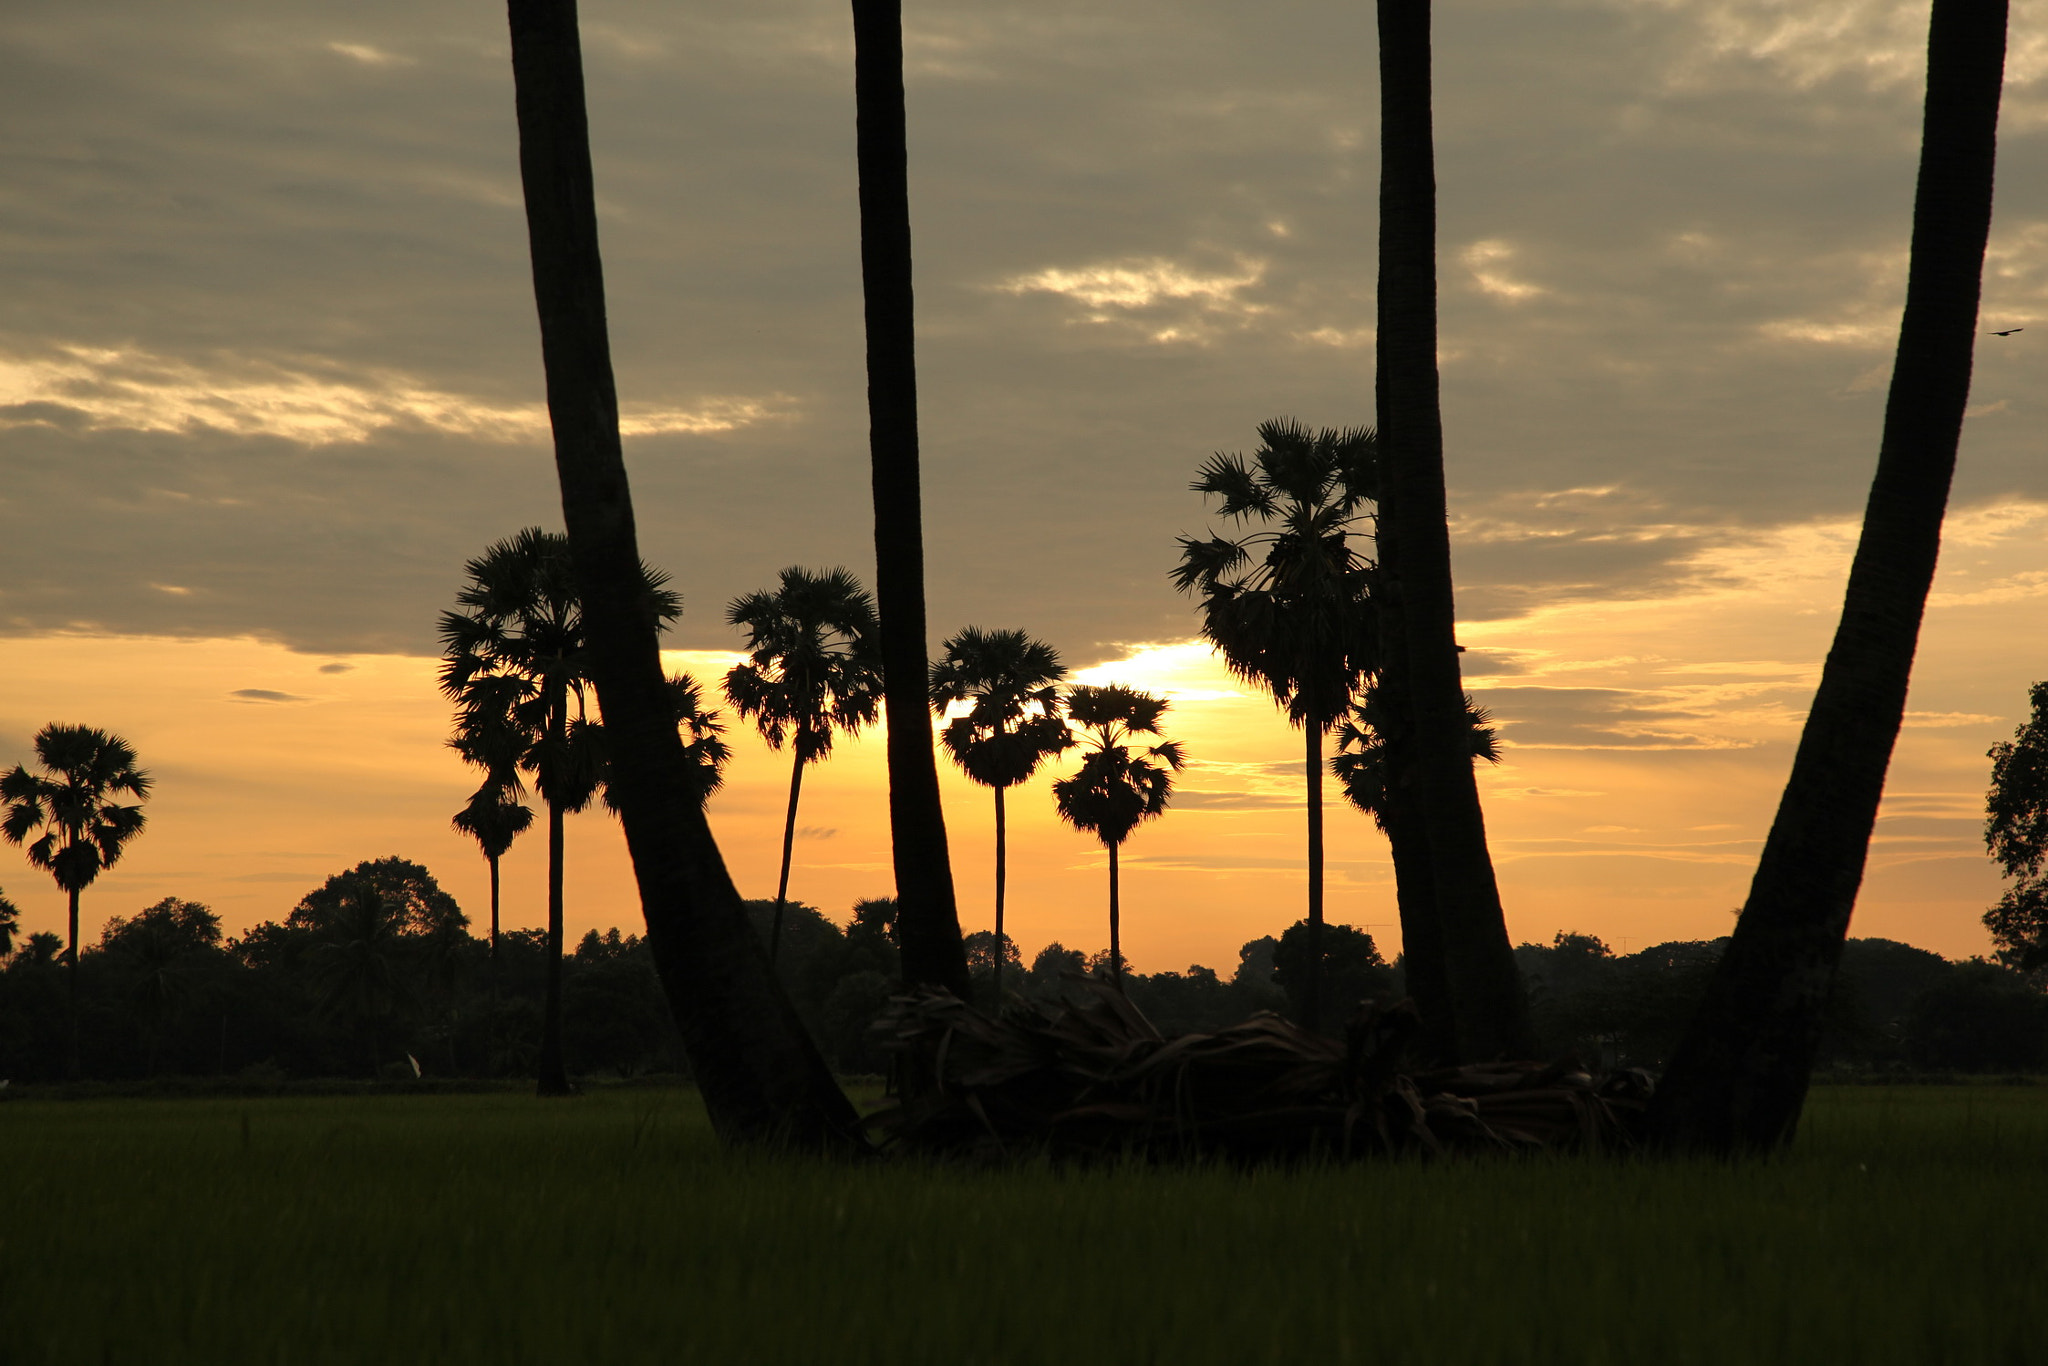 Photograph Sunset&Palm tree by Thongchai Rodyoi on 500px